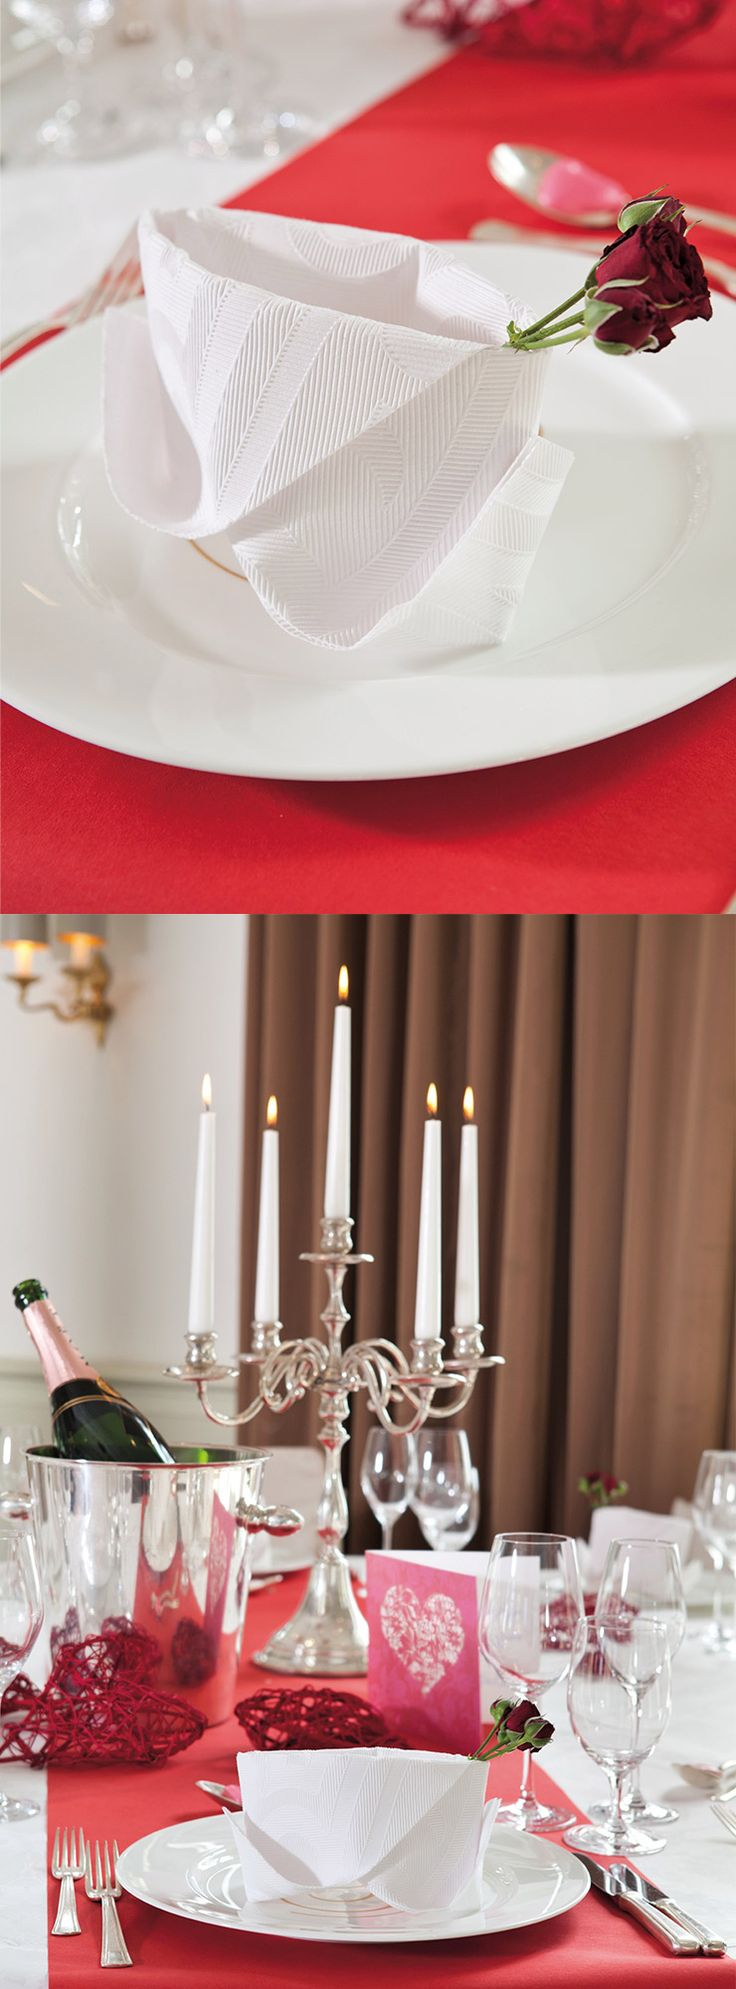 Valentine tablesetting - tablescapes for Valentines day - elegance napkins